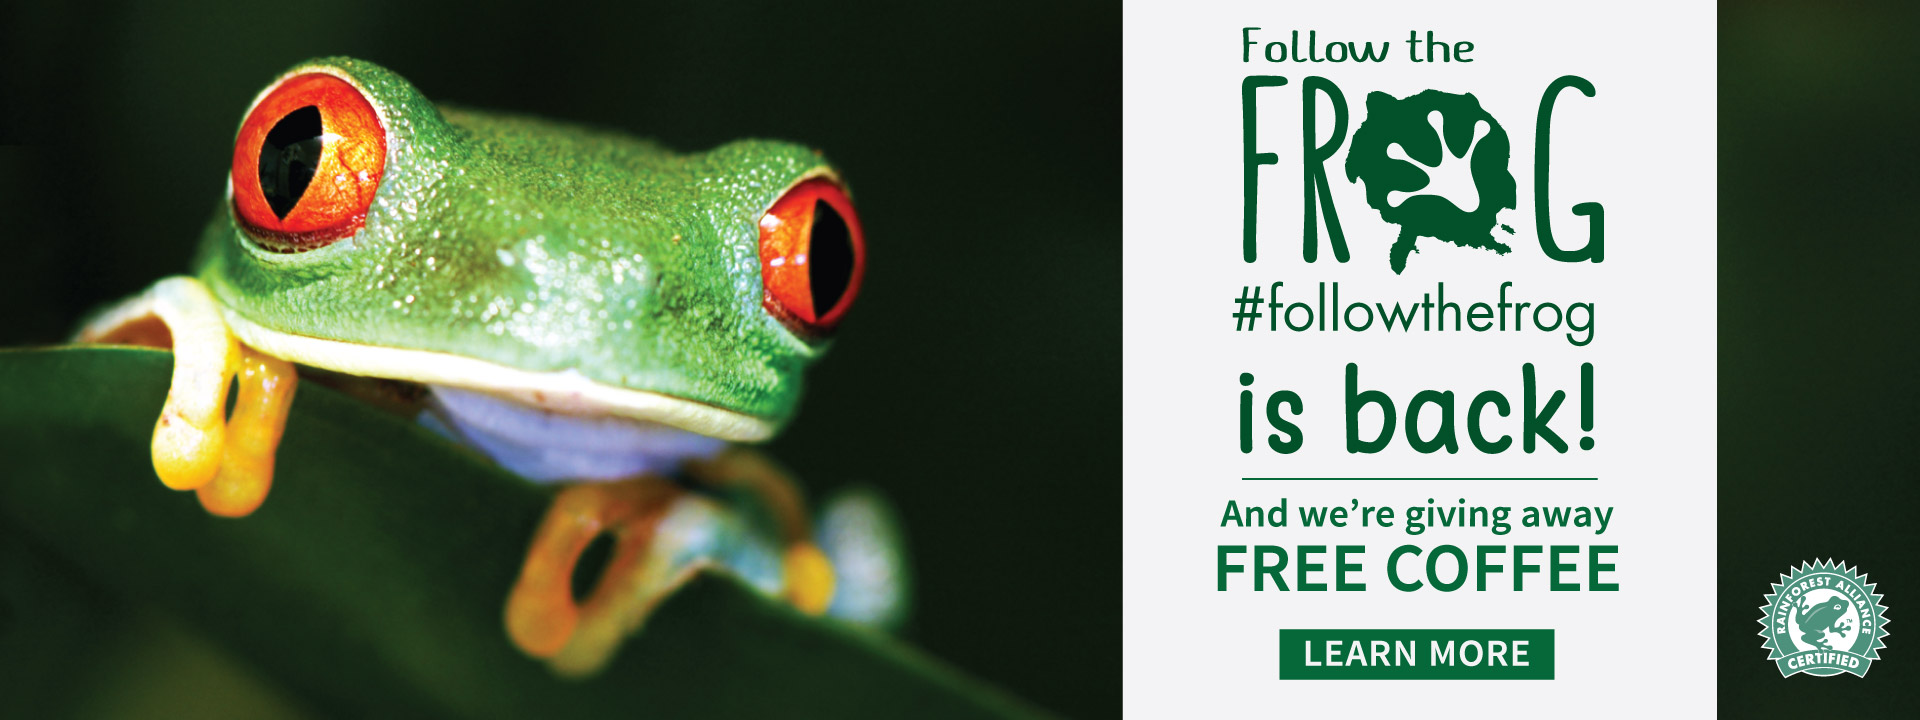 #followthefrog contest